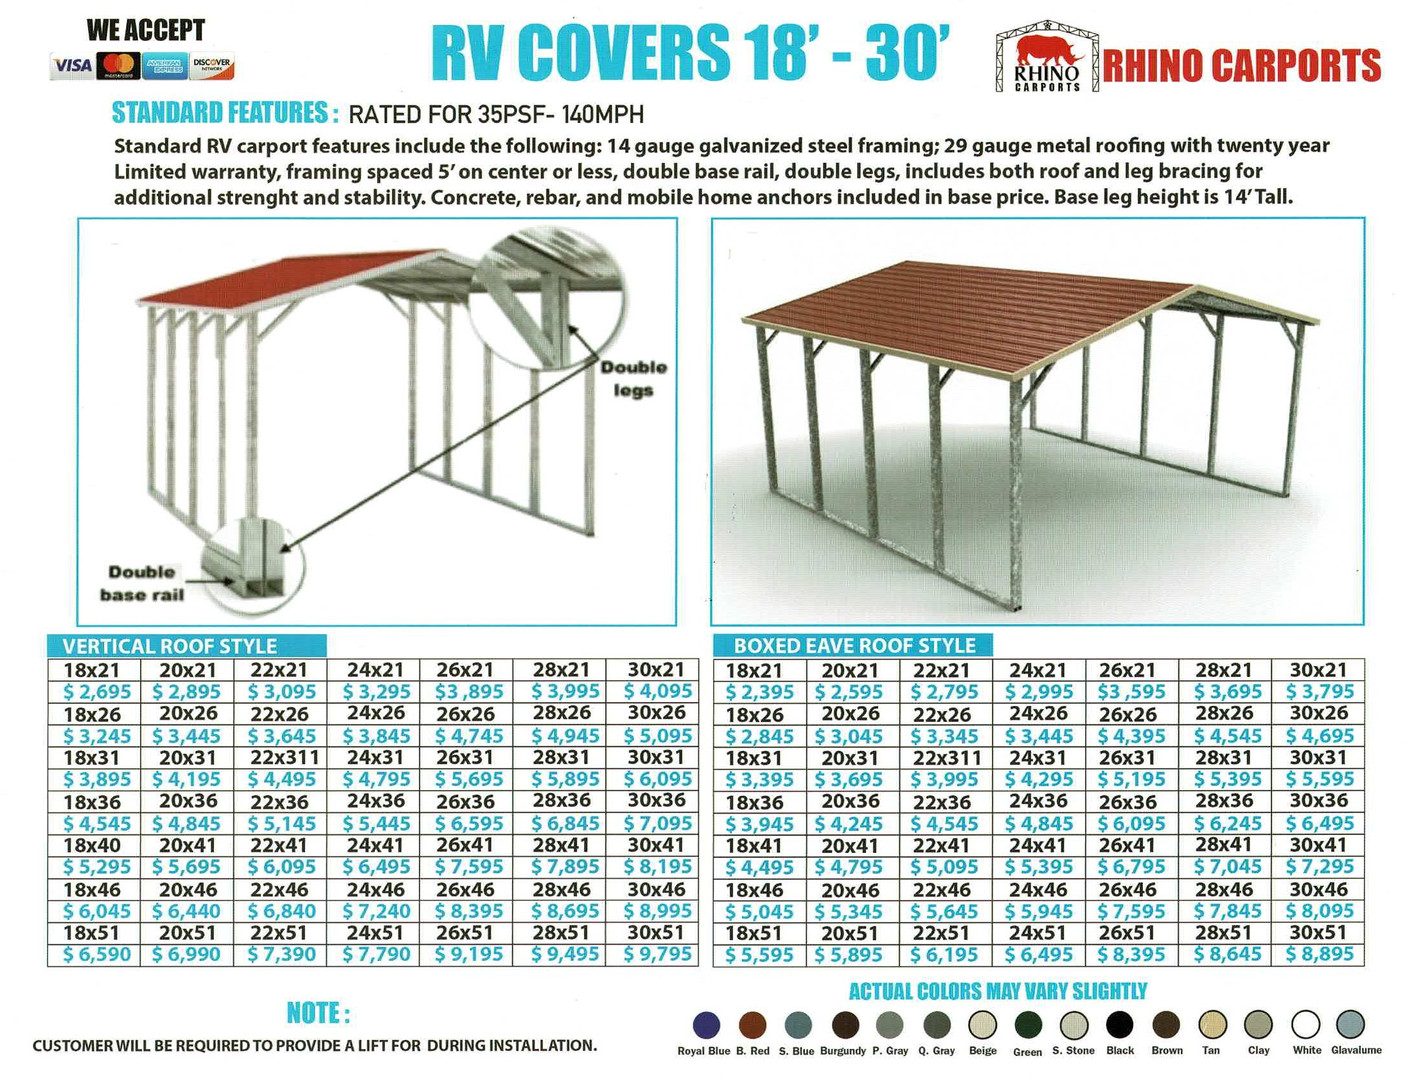 RV Covers front_edited.jpg